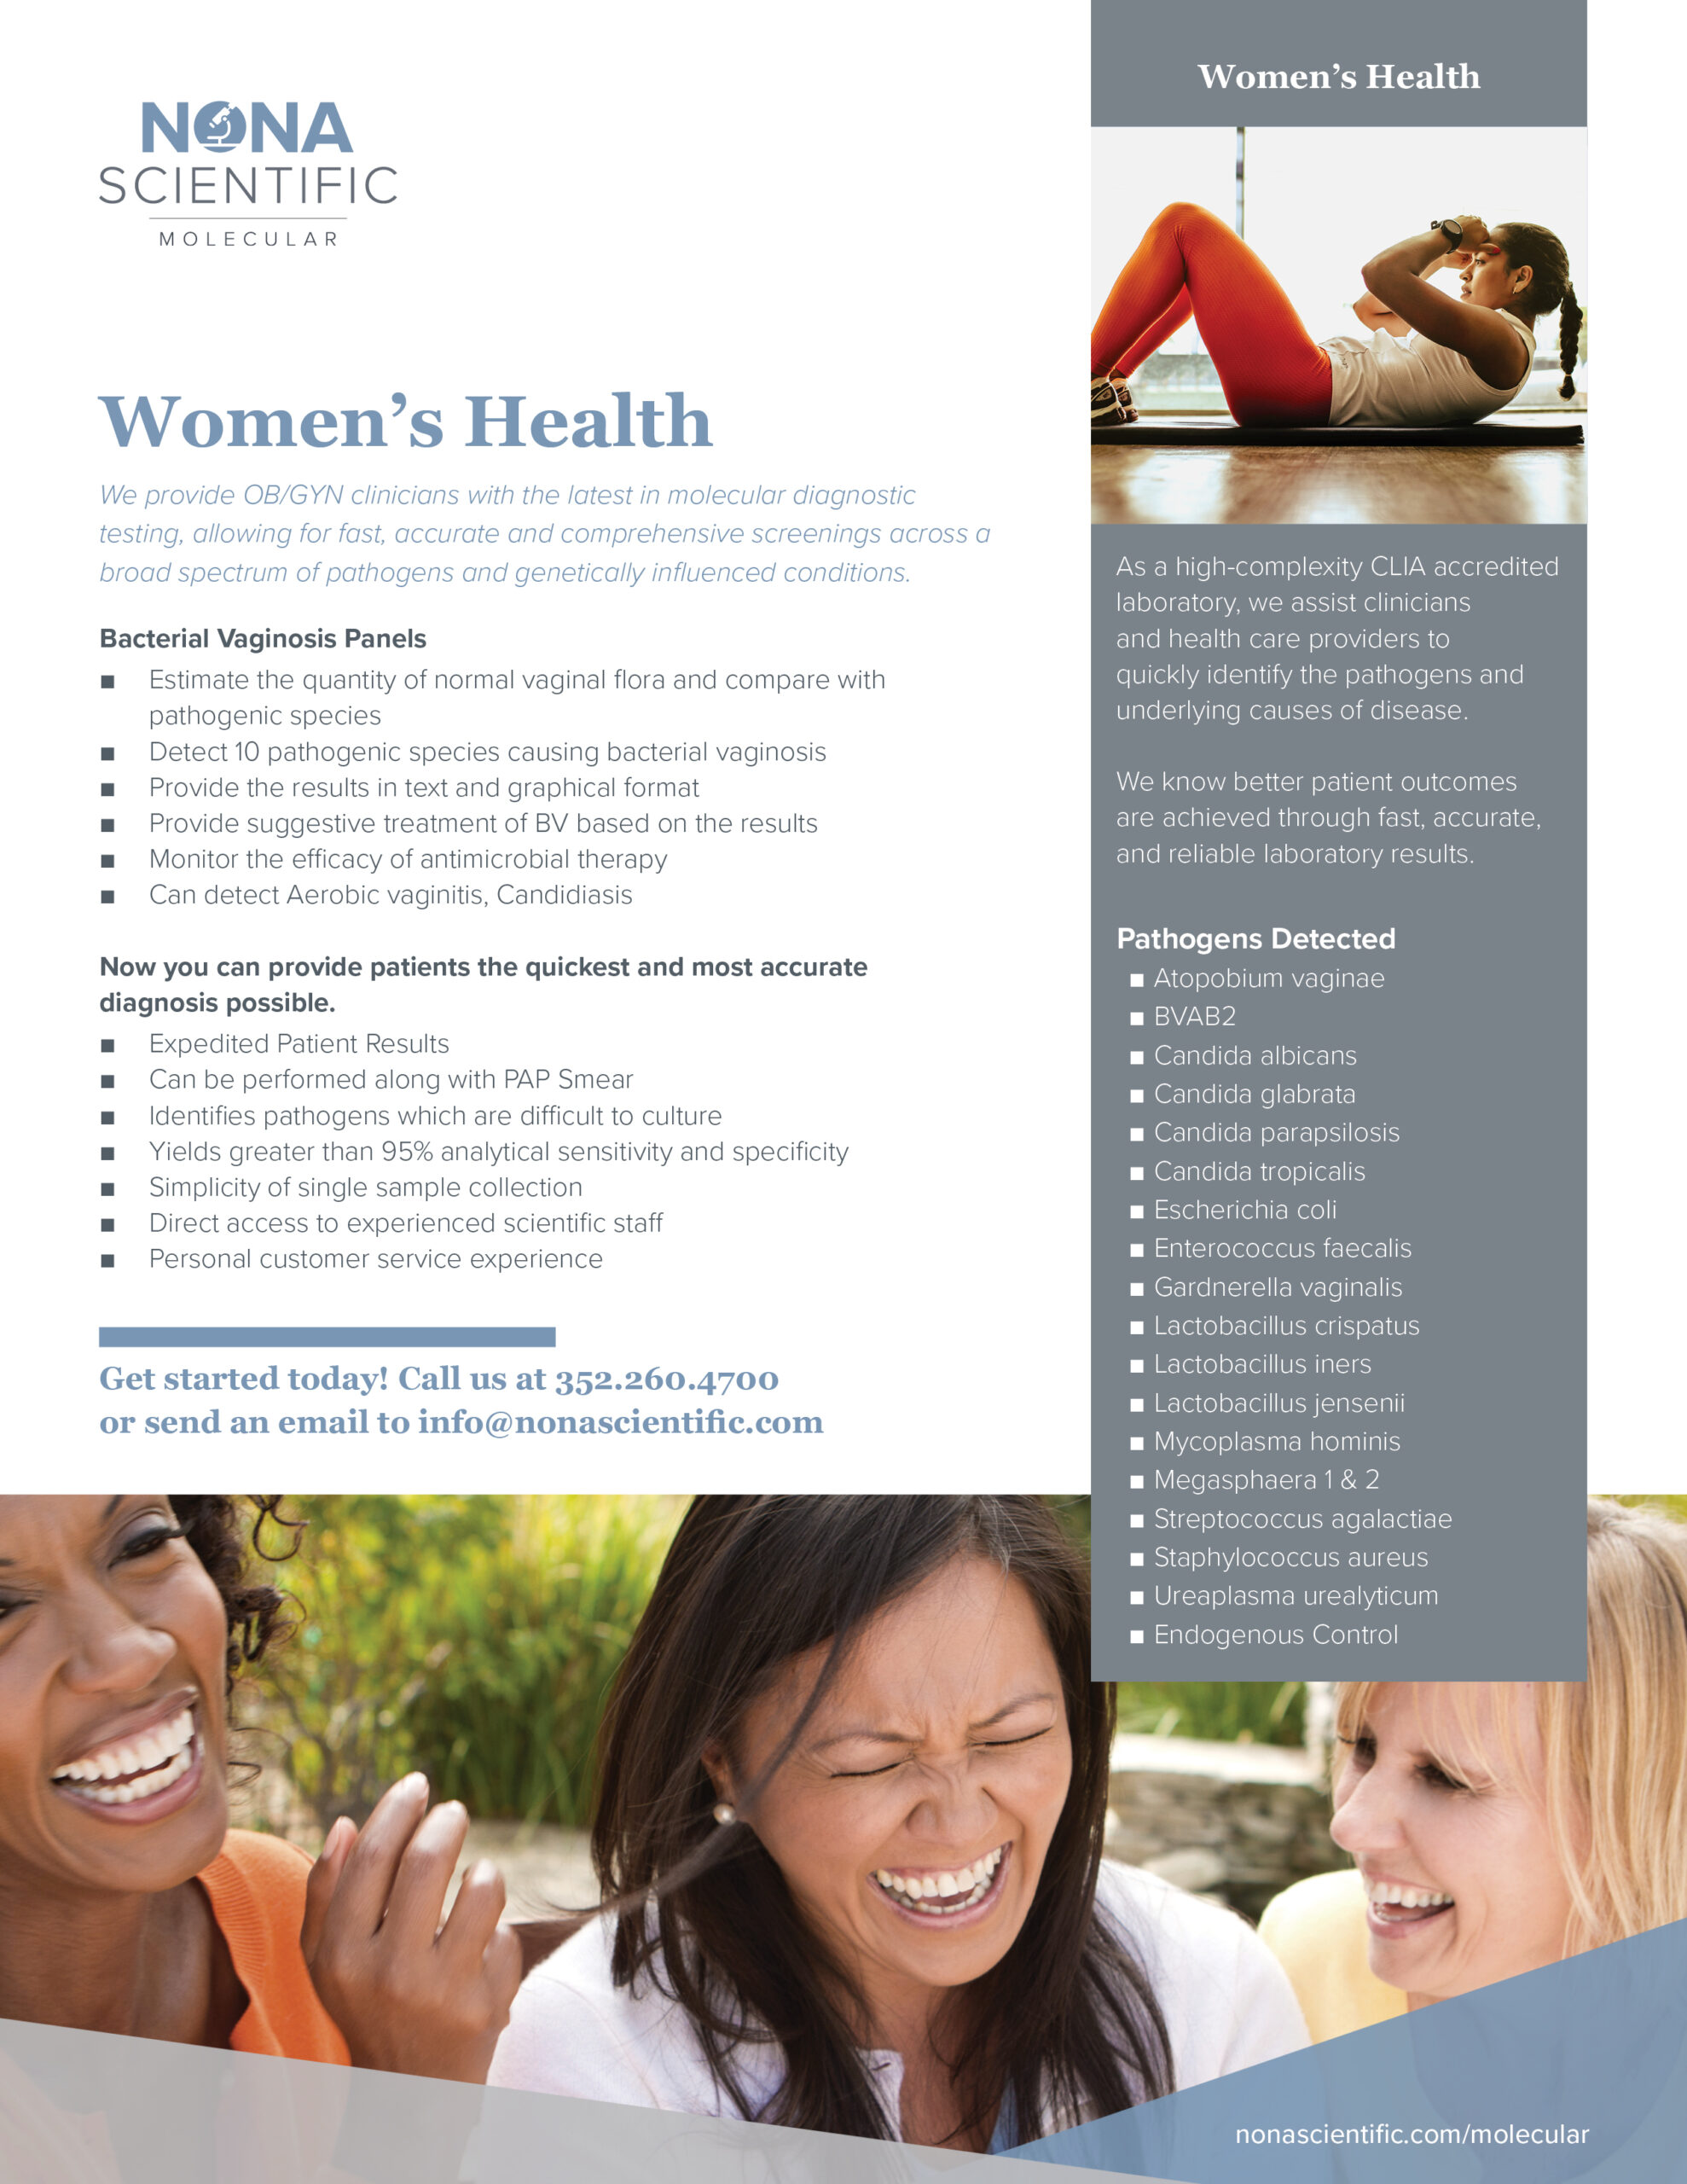 Nona Scientific Women's Health Panel Marketing